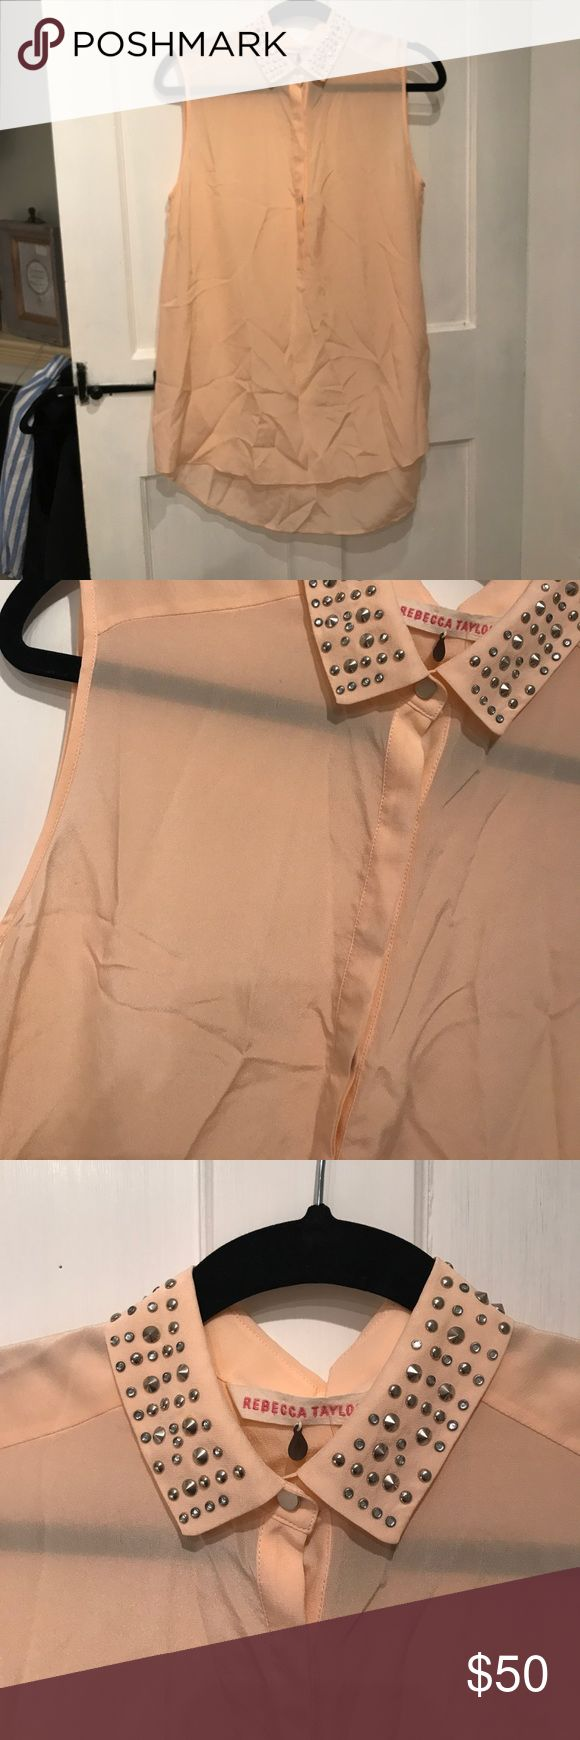 Rebecca Taylor Silk Blouse Orange And Pink 65